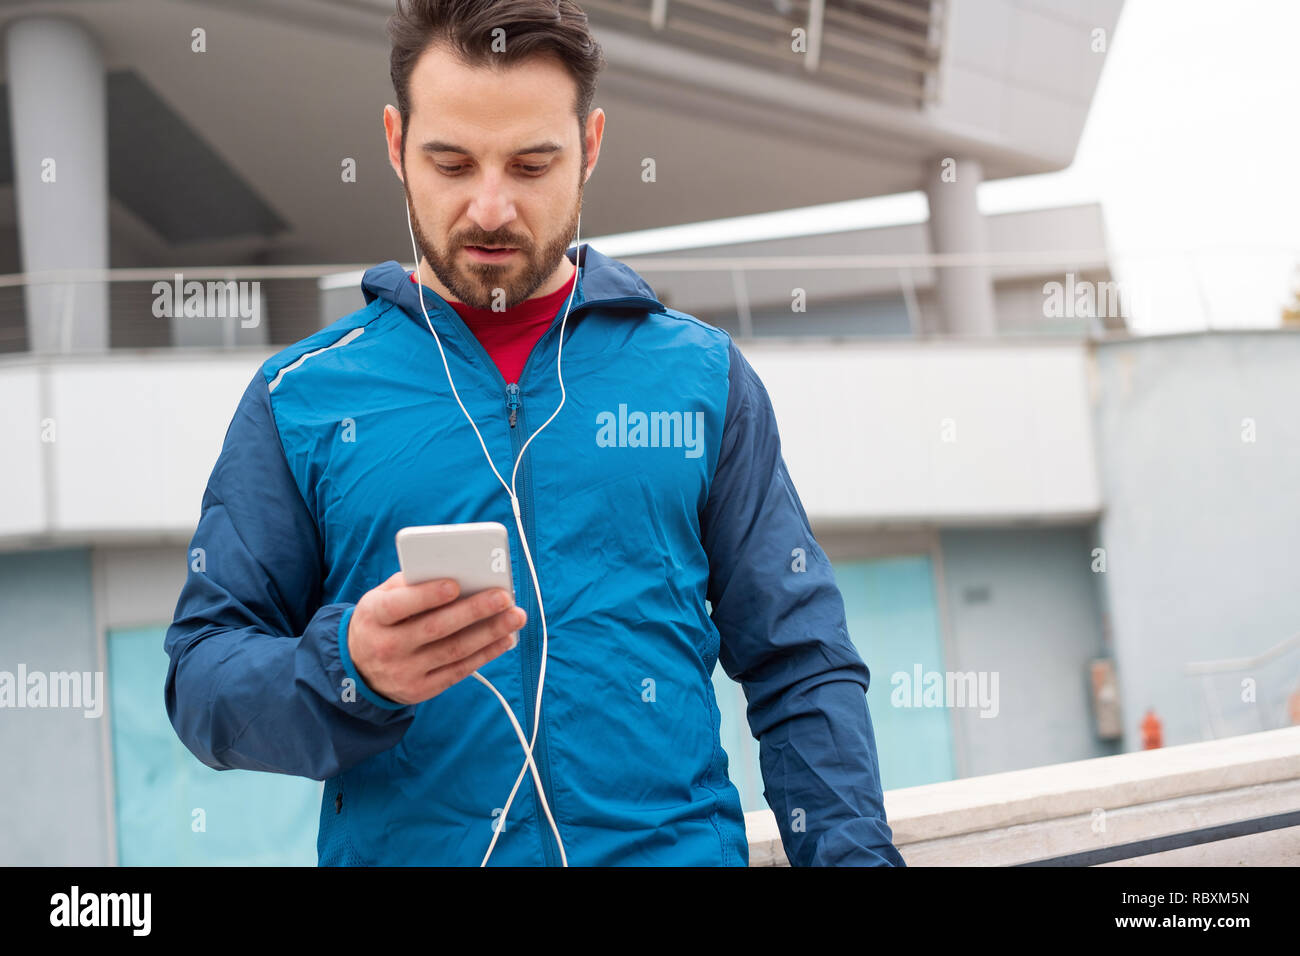 Athletic guy doing training session with smartphone - Stock Image